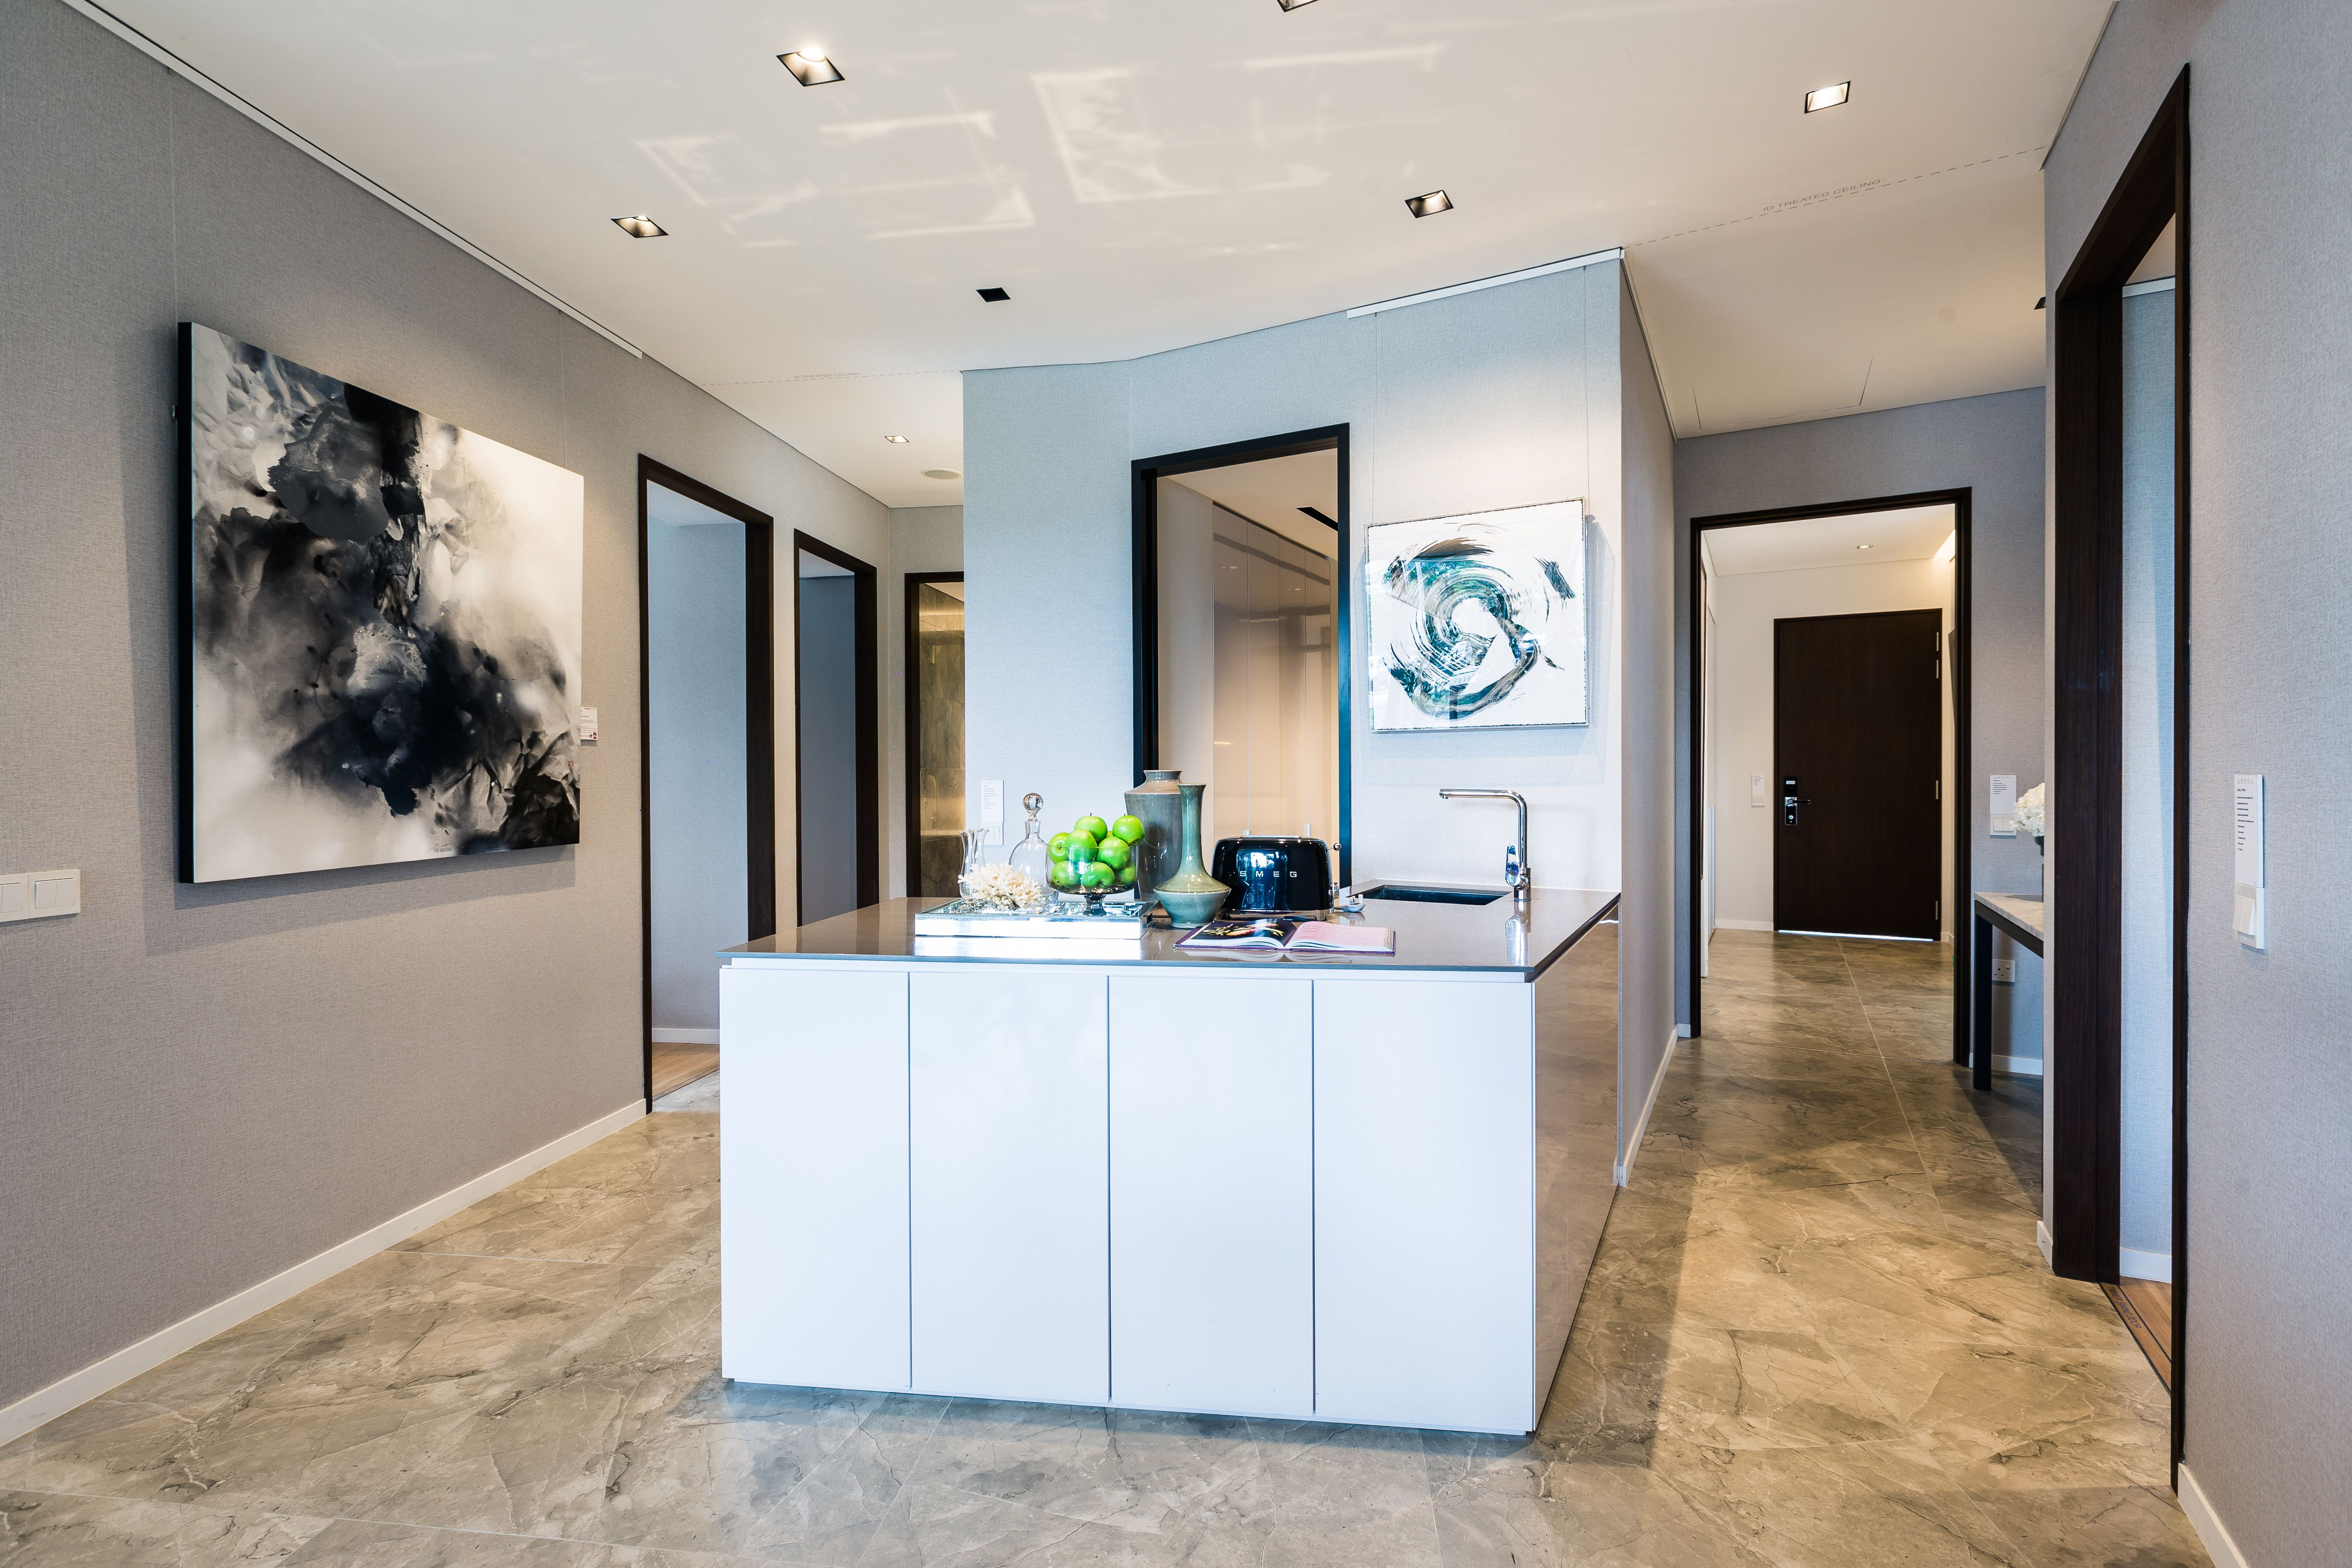 Kitchen for living in with hansgrohe focus Arta